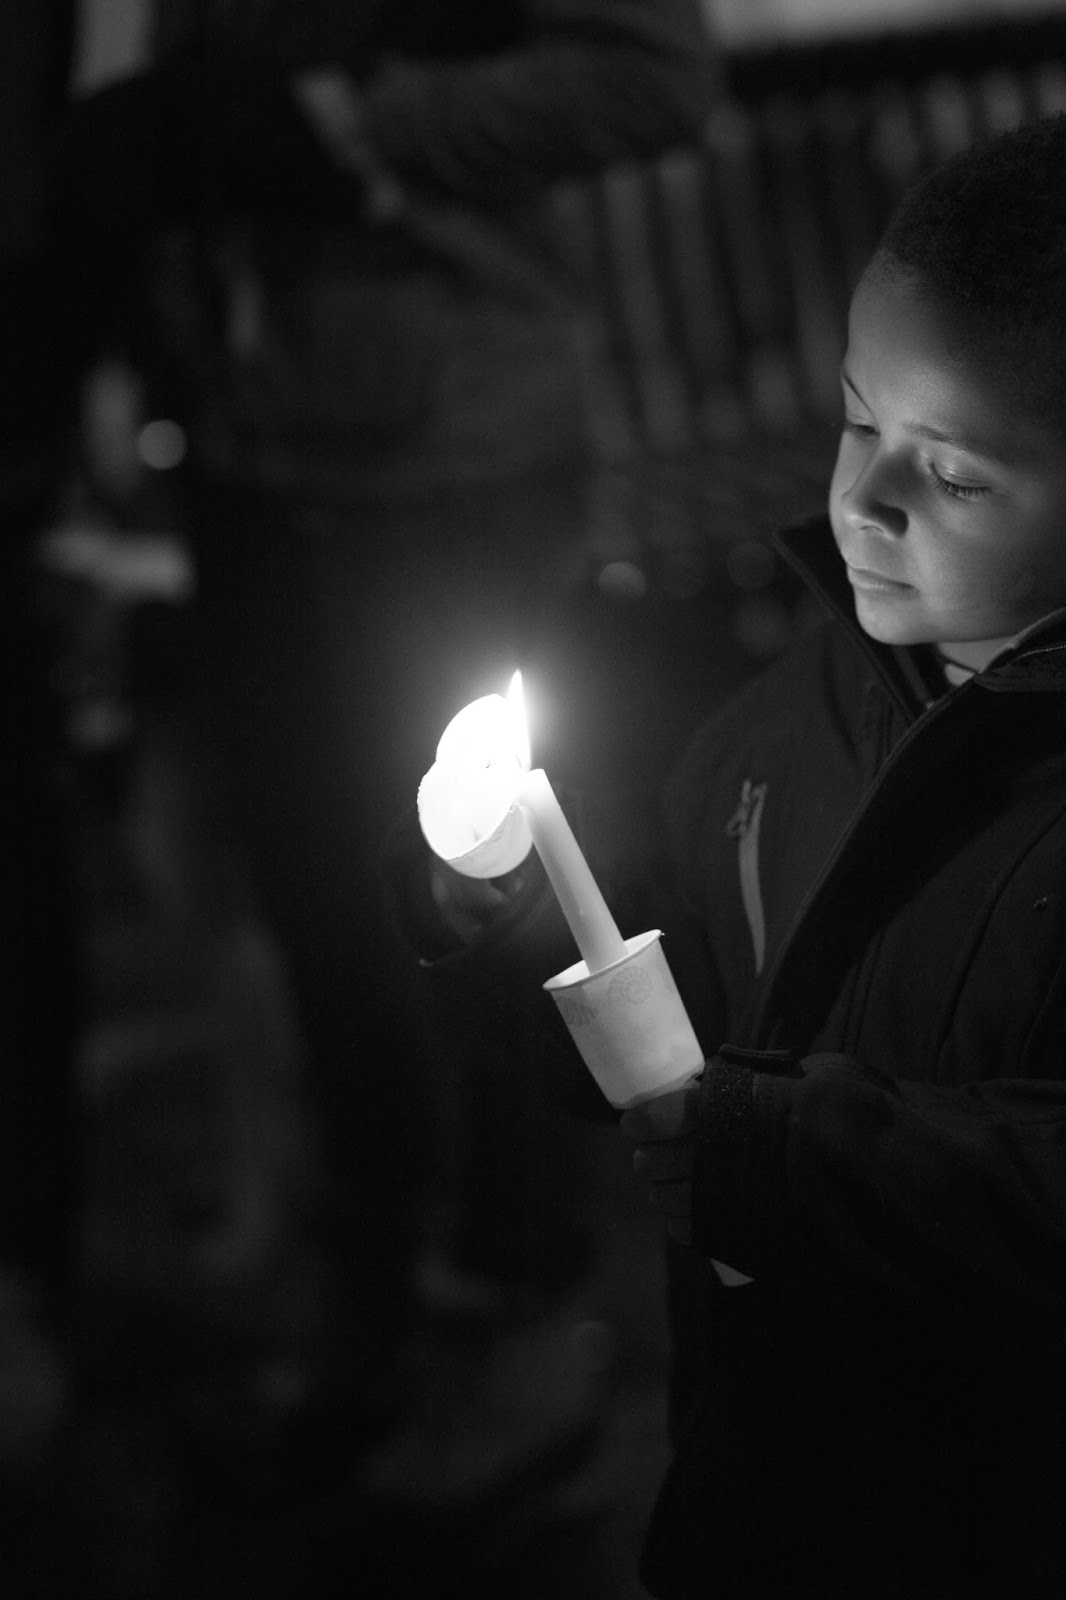 Boro Photography: Creative Visions, Homeless Vigil - Winter Solstice; Wedding and Event Photography